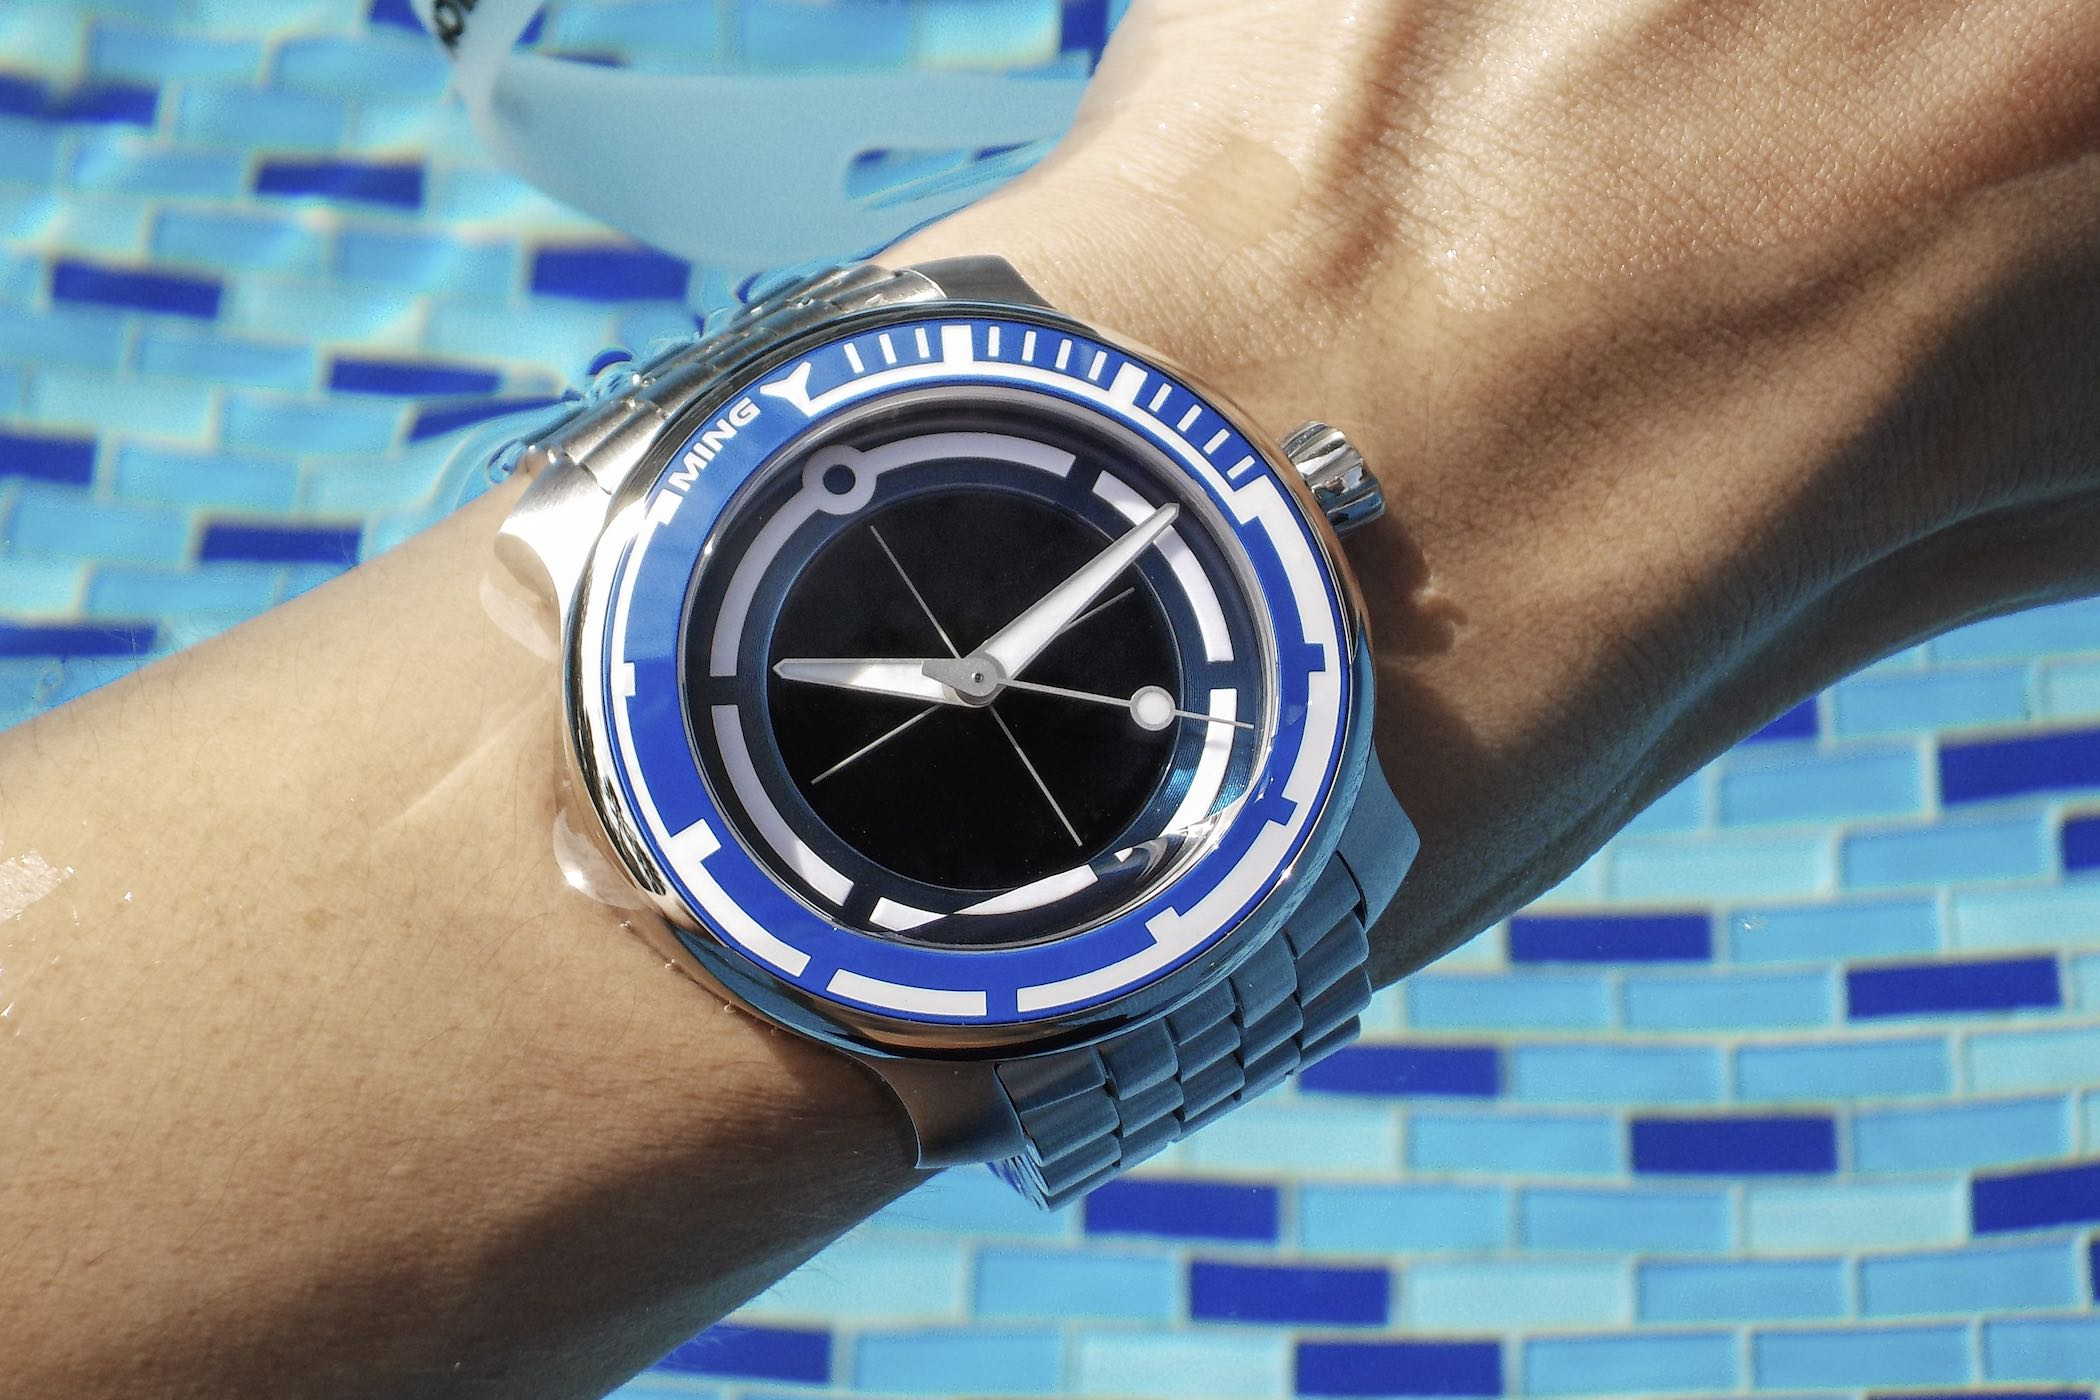 MING Watch 18.01 Abyss Concept Dive Watch